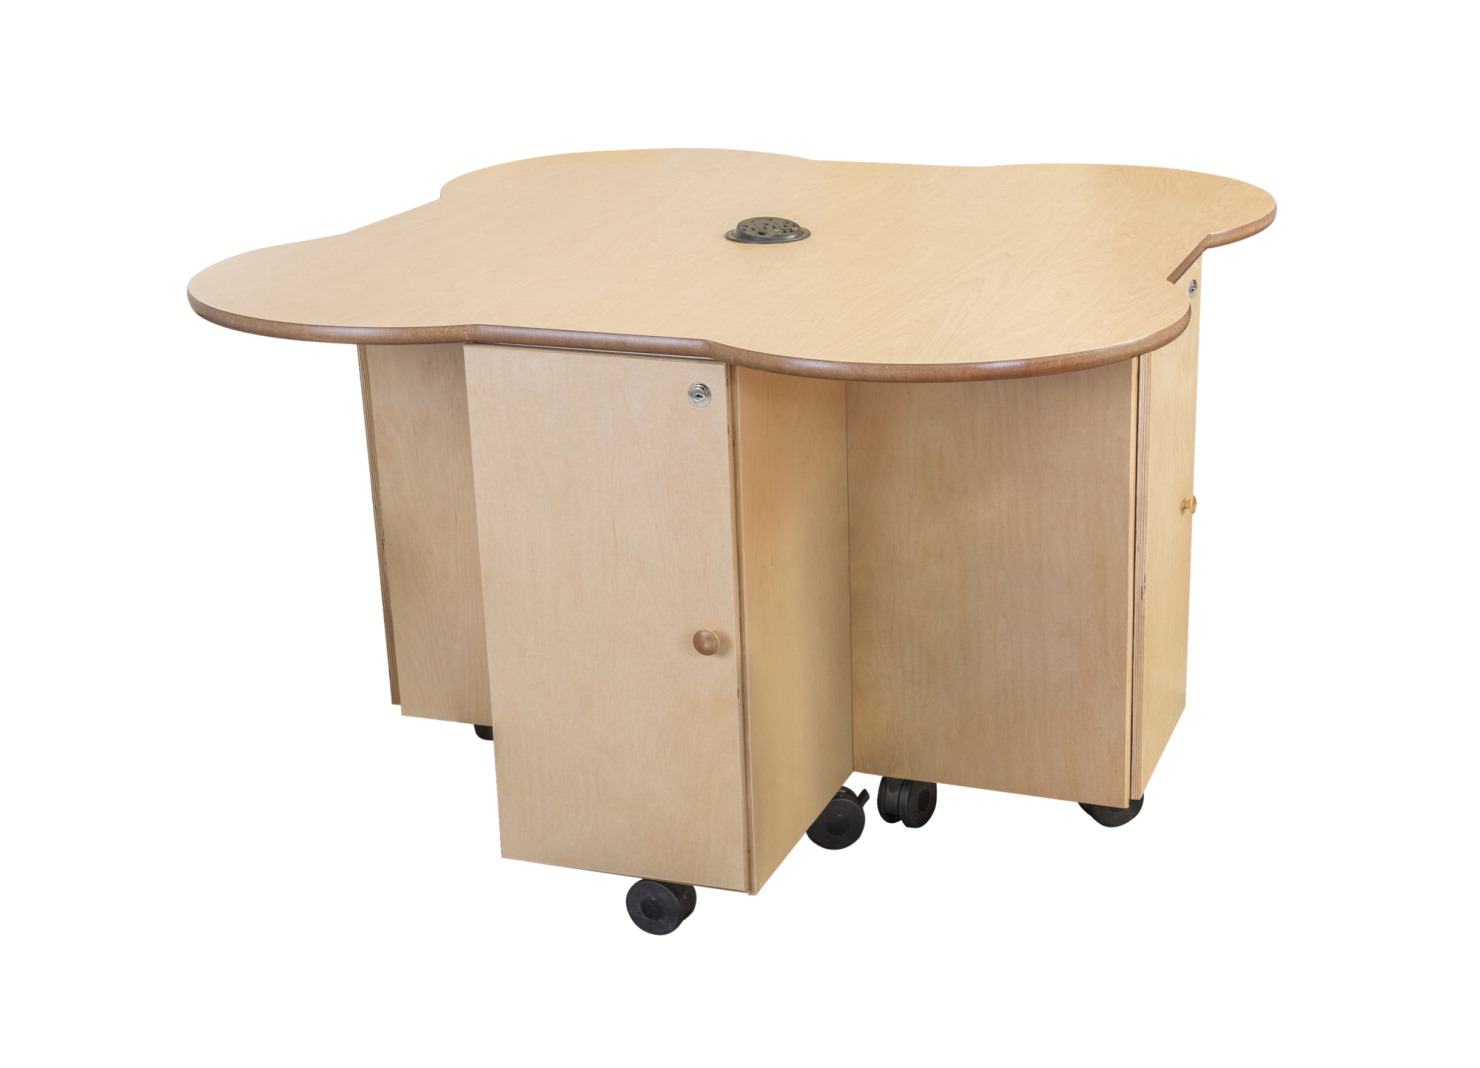 Classroom Select Steam Table, 47 3/4 L x 47 3/4 W x 30 H in